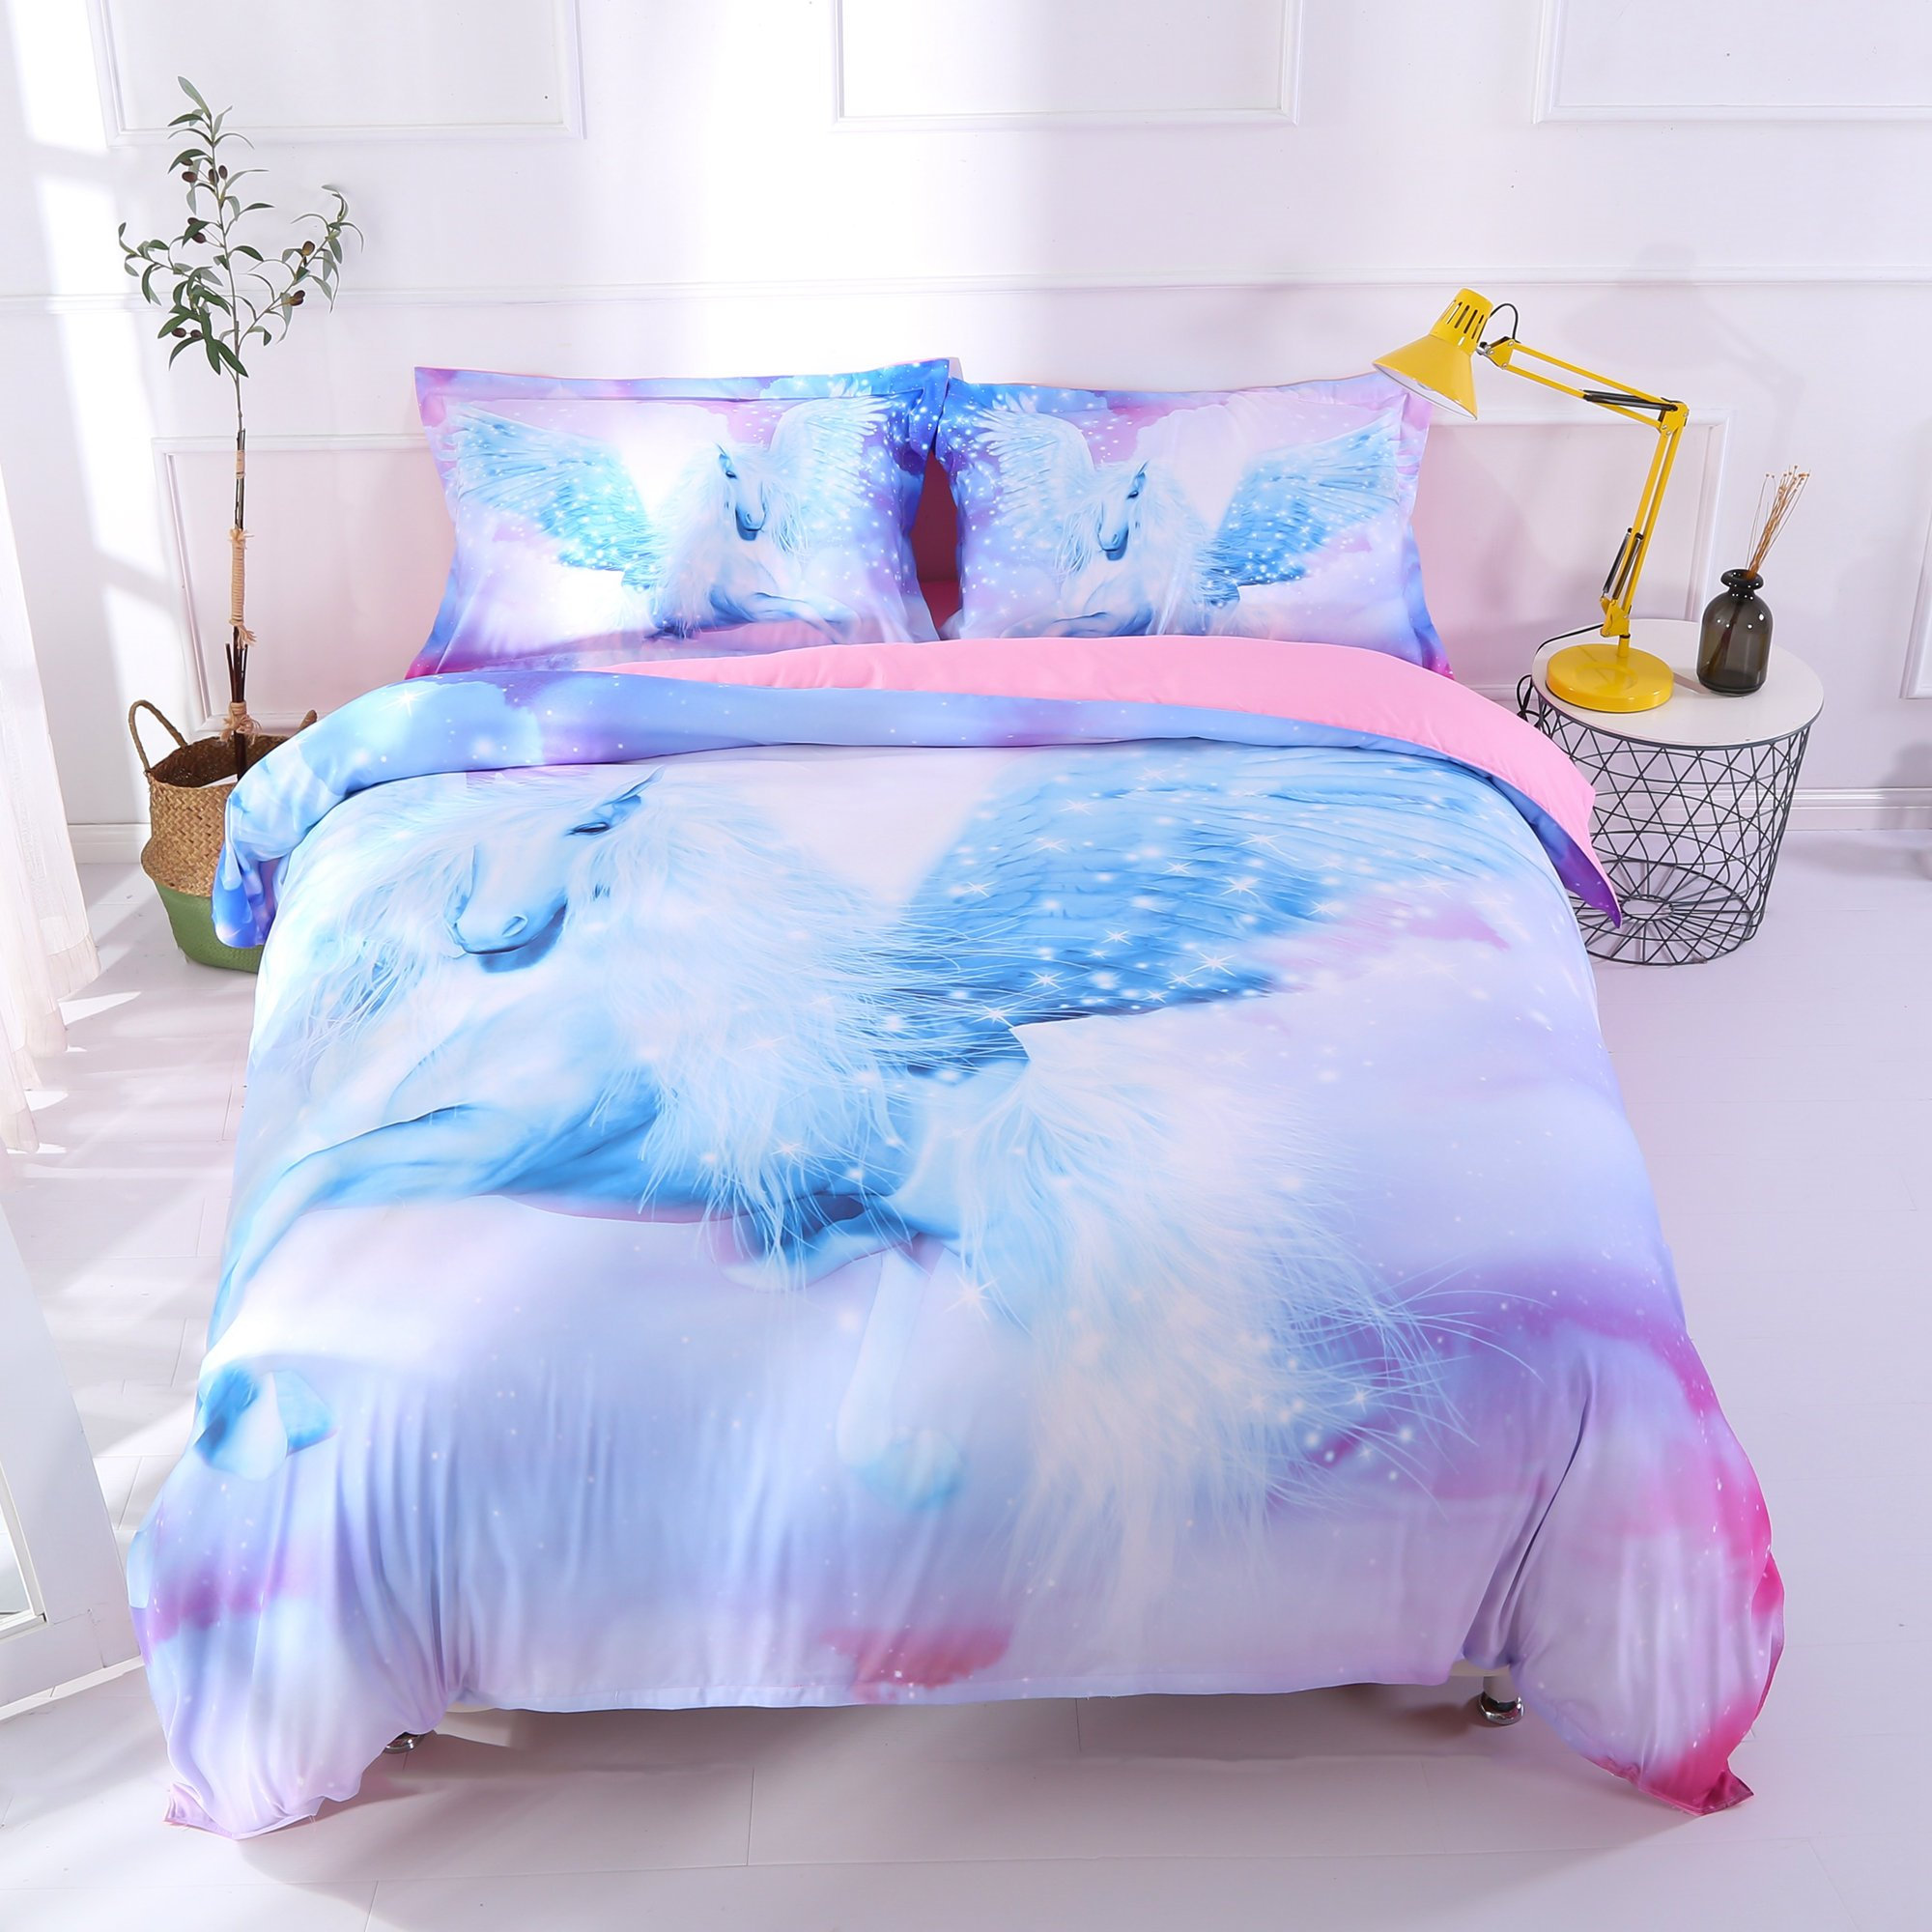 Vivilinen White Unicorn with Wings Printed 4-Piece 3D Bedding Sets/Duvet Covers